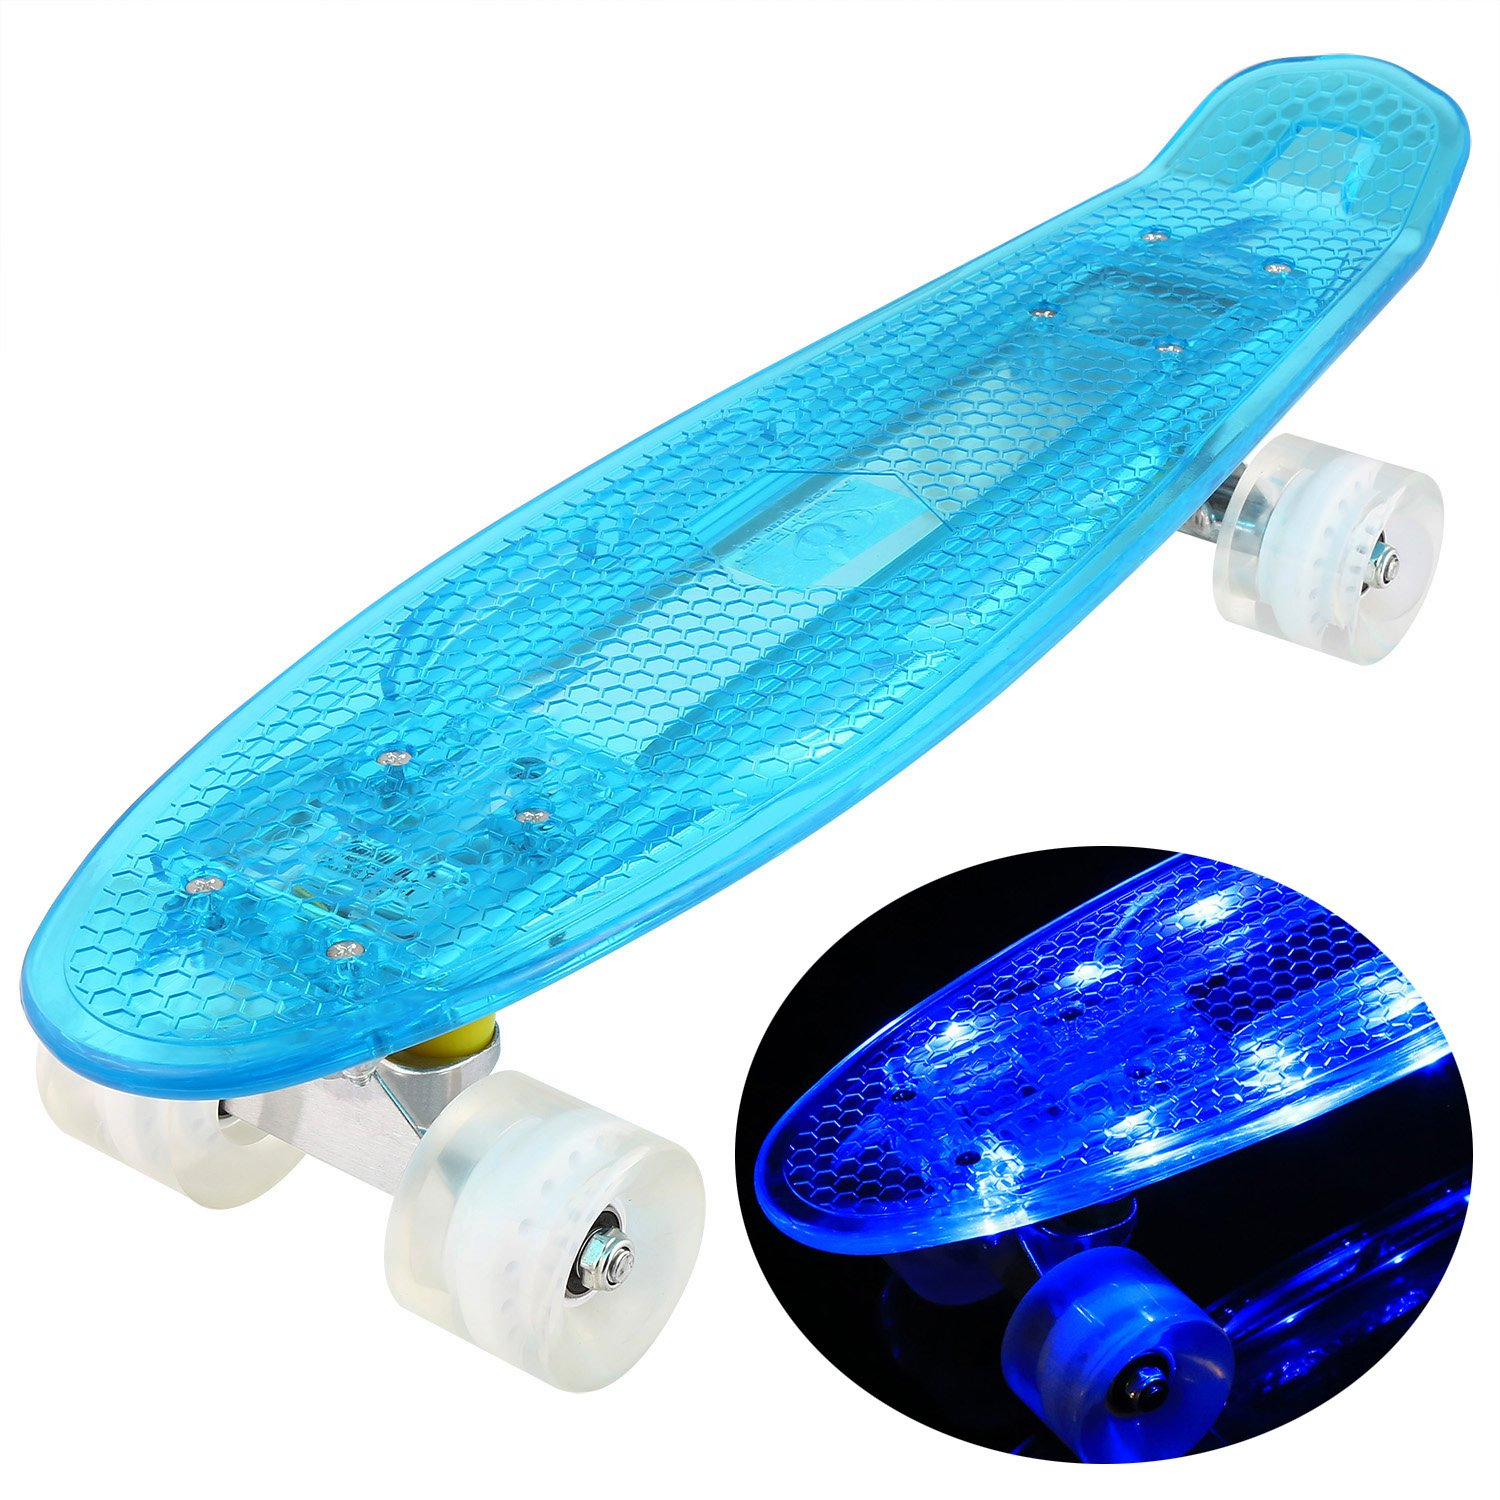 WeSkate Mini Cruiser Skateboard Complete - Crystal 22''x 6'' Skate Board with LED Flashing Light Up Deck for Kids Boys Girls Youths Beginners (Blue White)